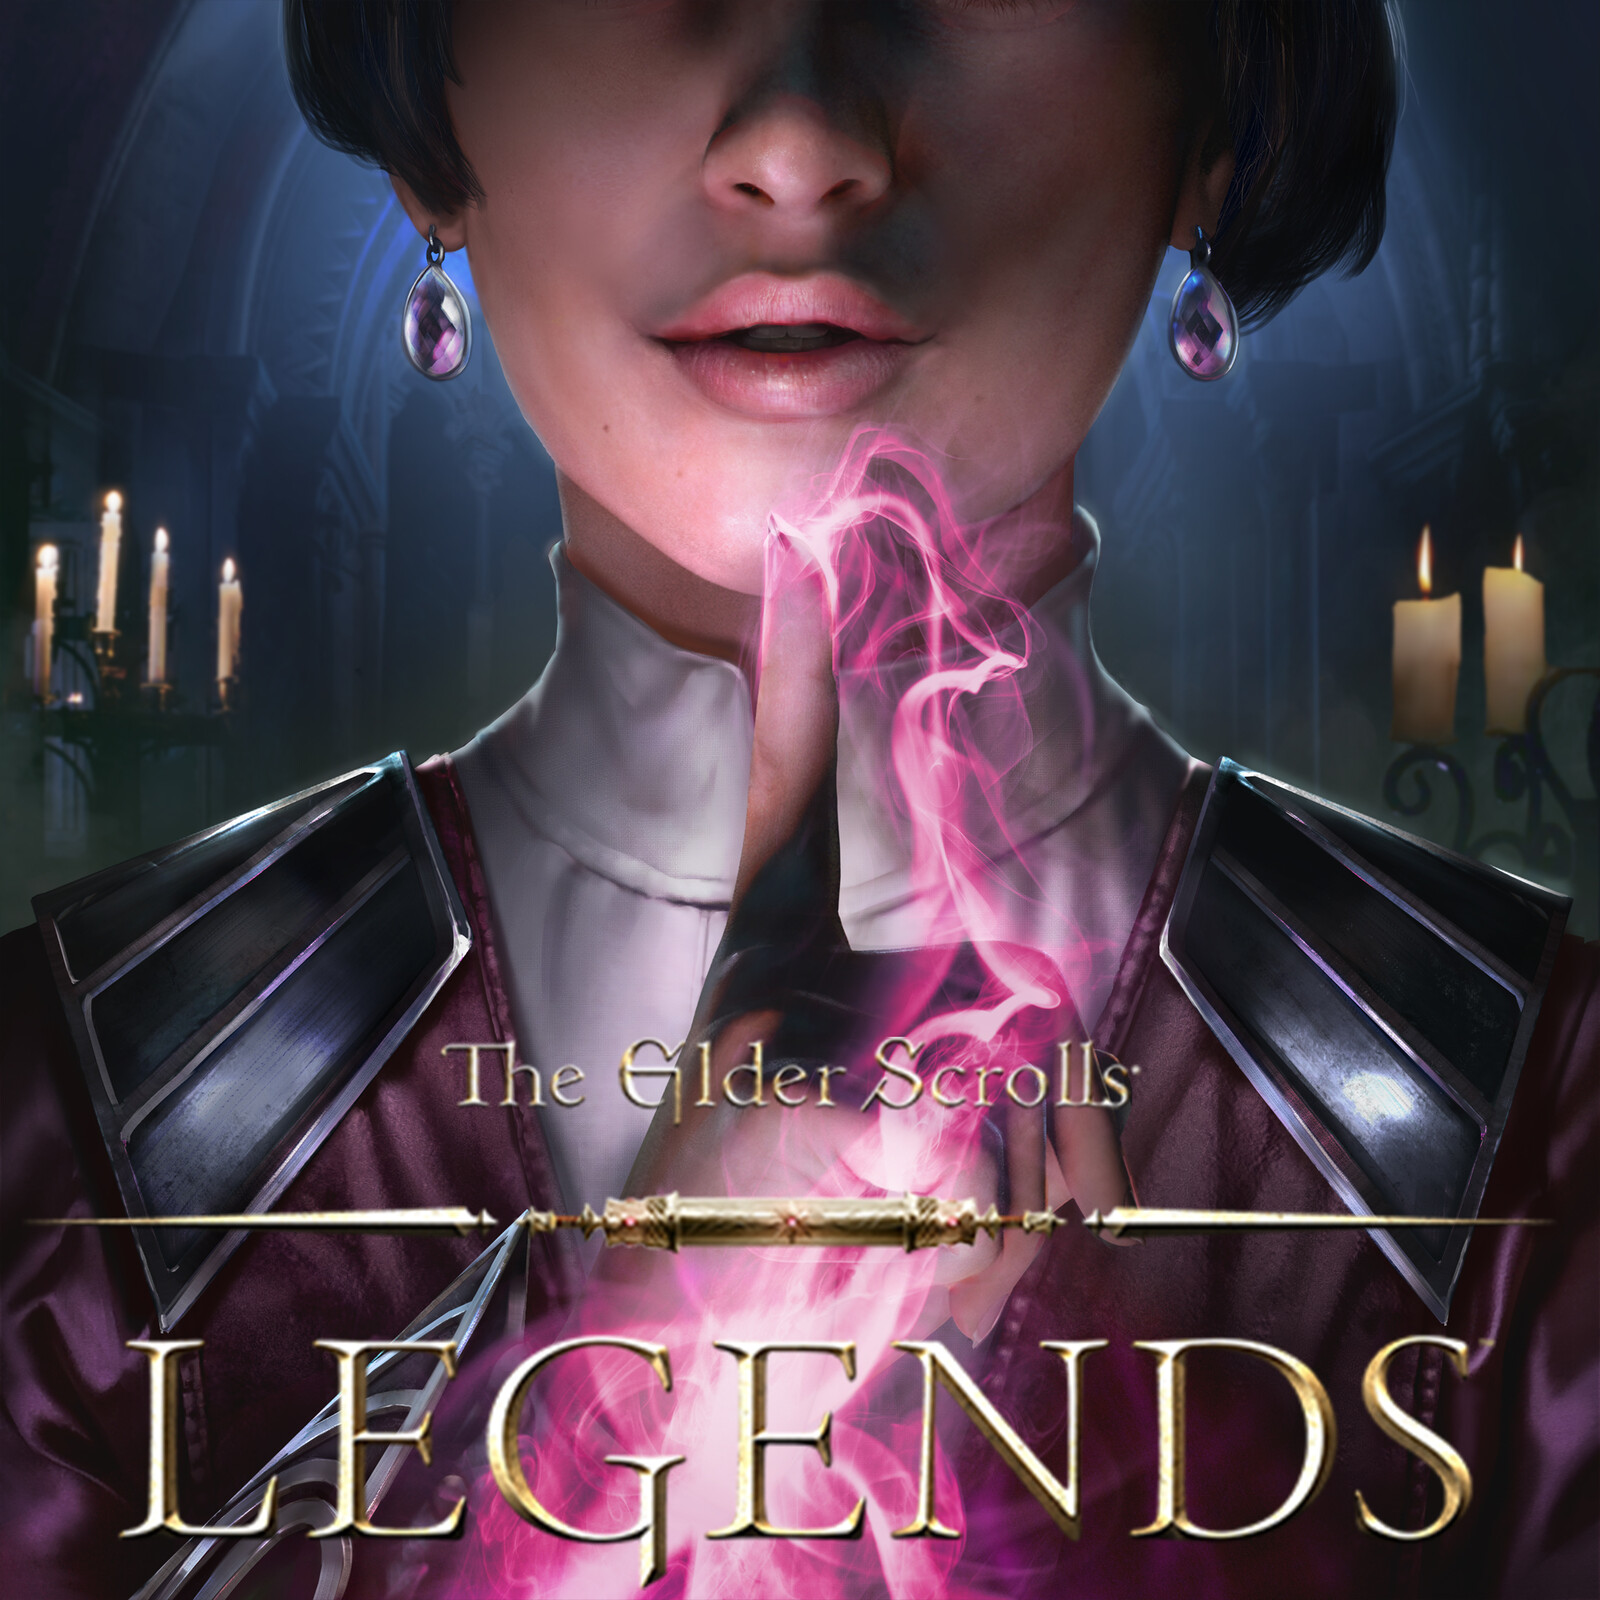 Hush - The Elder Scrolls: Legends